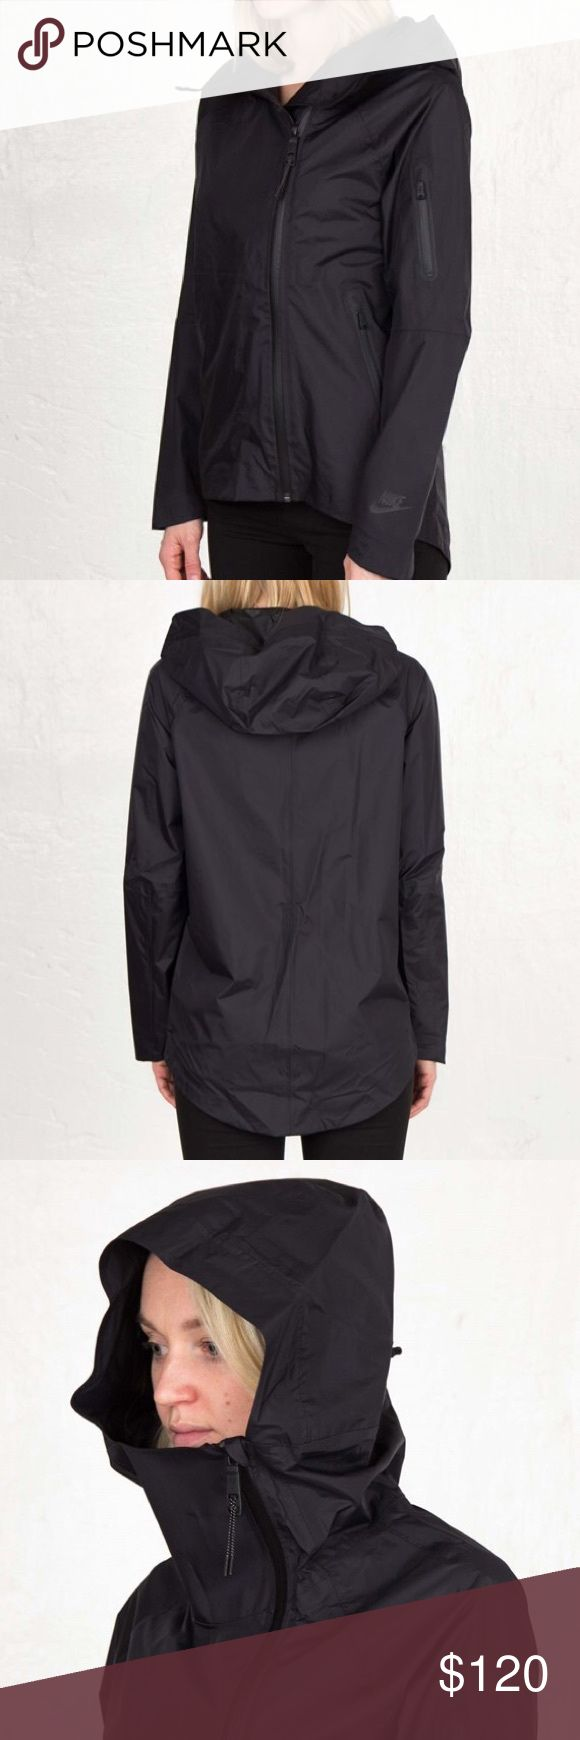 Nike H20 Woven Women's Cape Jacket Waterproof NO TRADES - The Nike H20 Woven Women's Cape. Waterproof nylon fabric helps keep you dry in the rain. Oversized scuba hood adjusts for custom coverage. Interior media pocket and headphone tunnel. Drop-tail hem for enhanced coverage. Asymmetrical front-zip closure for easy on and off. Hook-and-loop closure at cuffs for a customizable fit. Bonded zip pockets on sides and left sleeve Fabric: Shell: 100% nylon. Body: 70% cotton/30% polyester. Pocket…